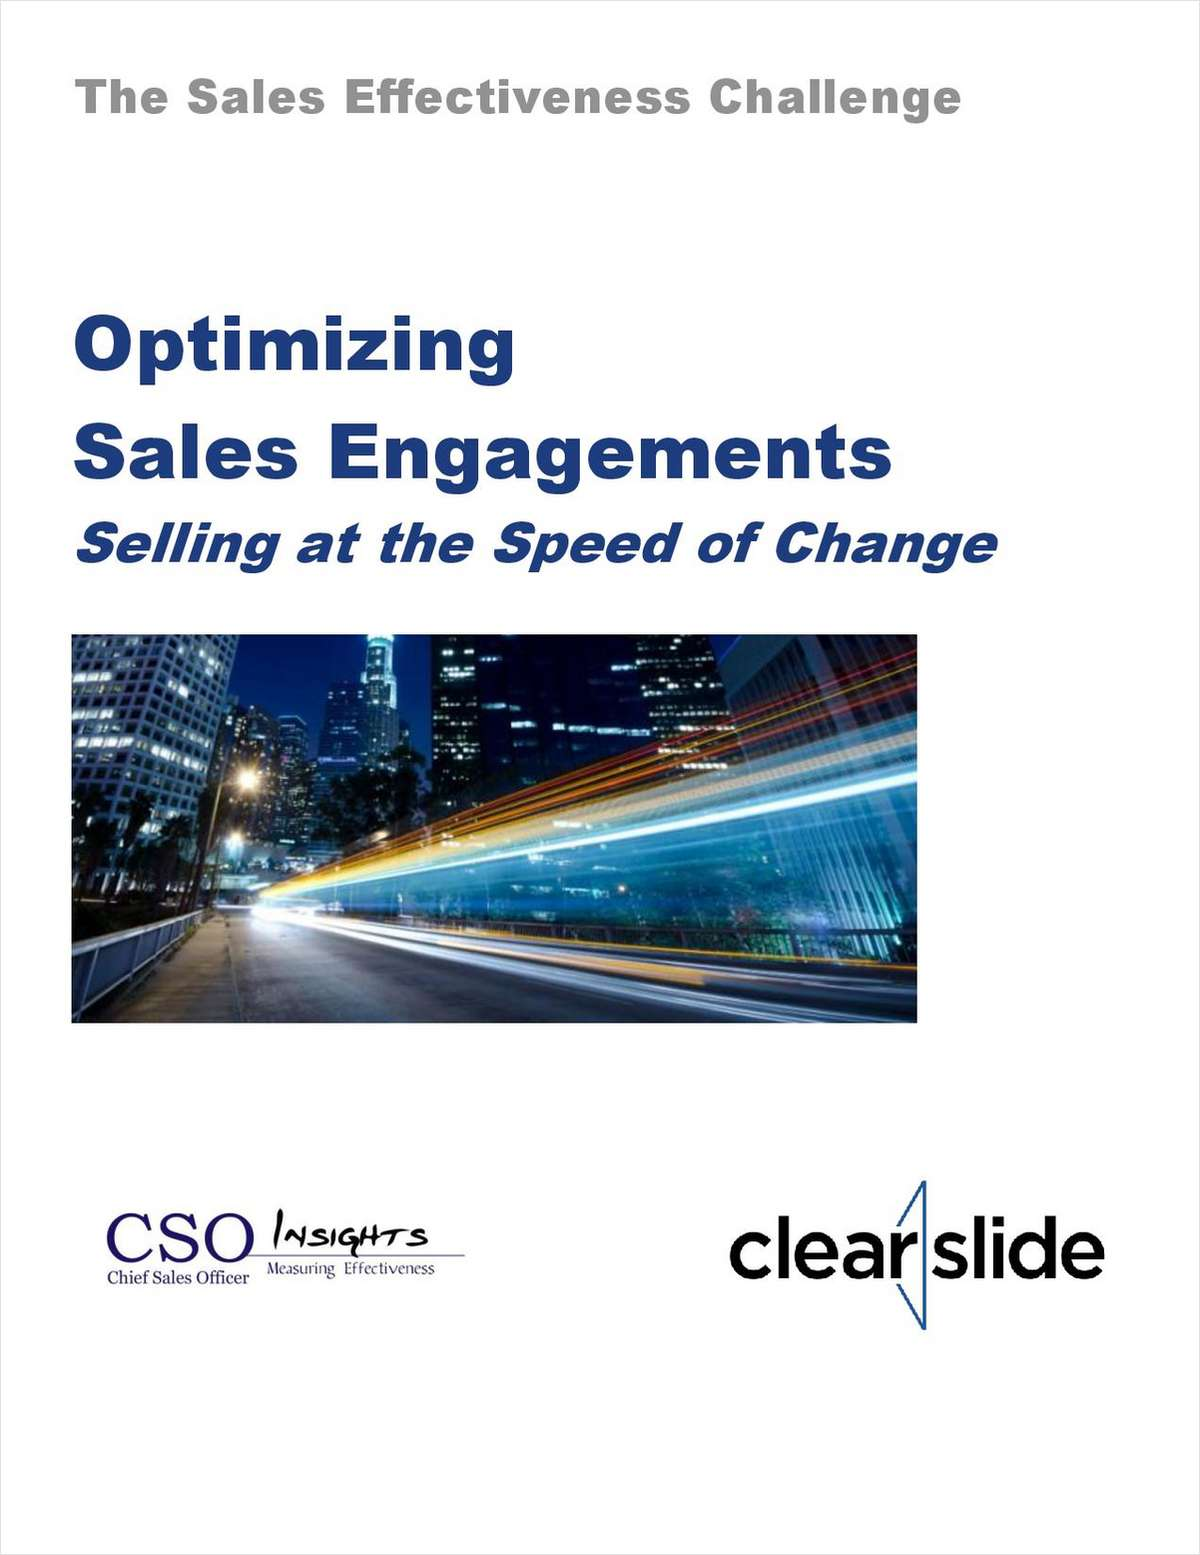 Optimizing Sales Engagements: Selling at the Speed of Change